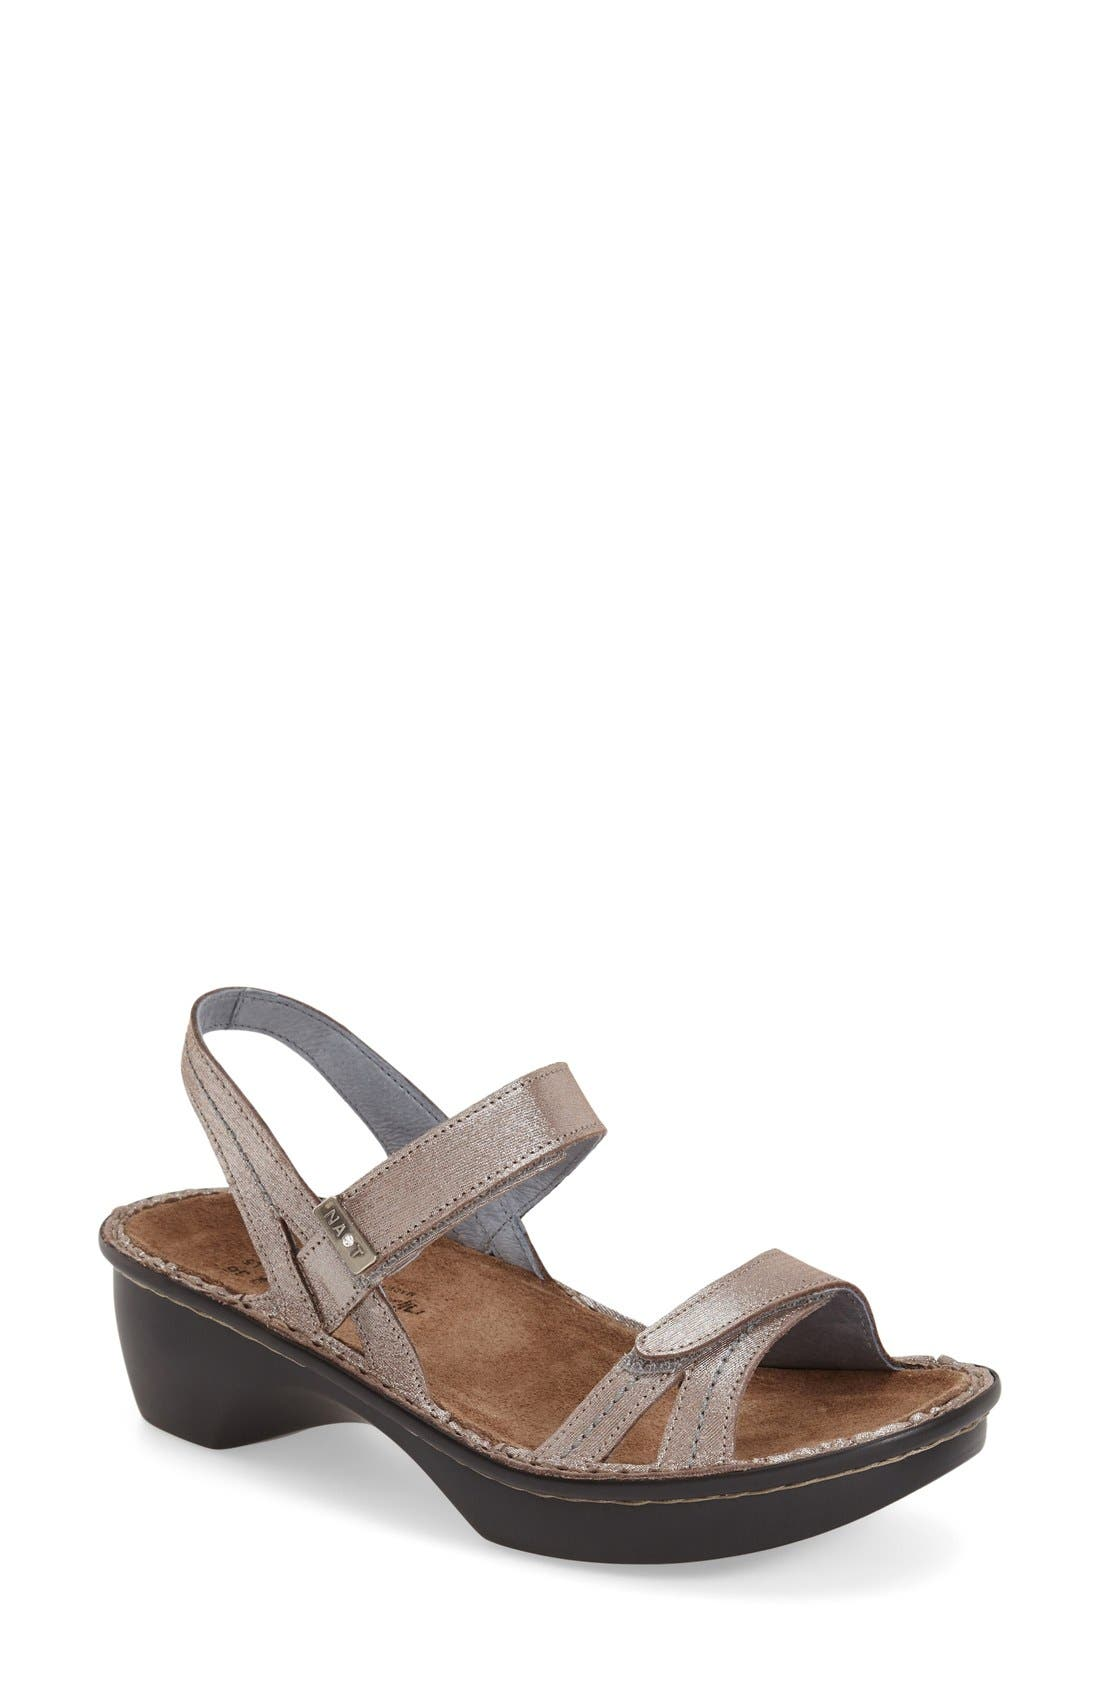 Alternate Image 1 Selected - Naot 'Brussels' Sandal (Women)